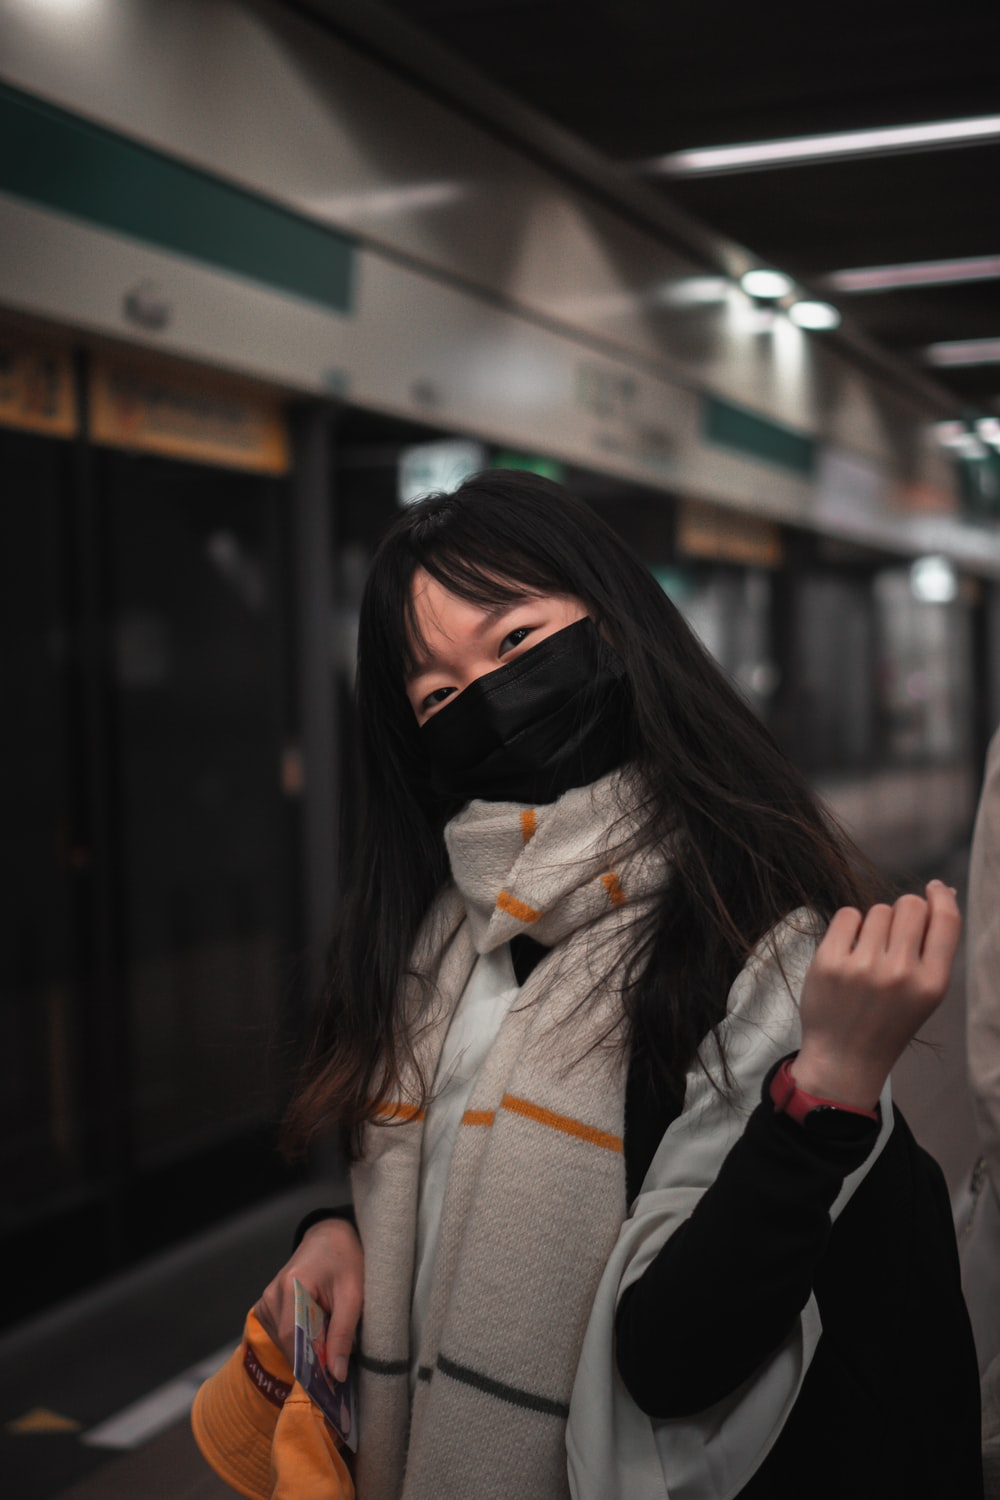 woman in black mask and gray coat